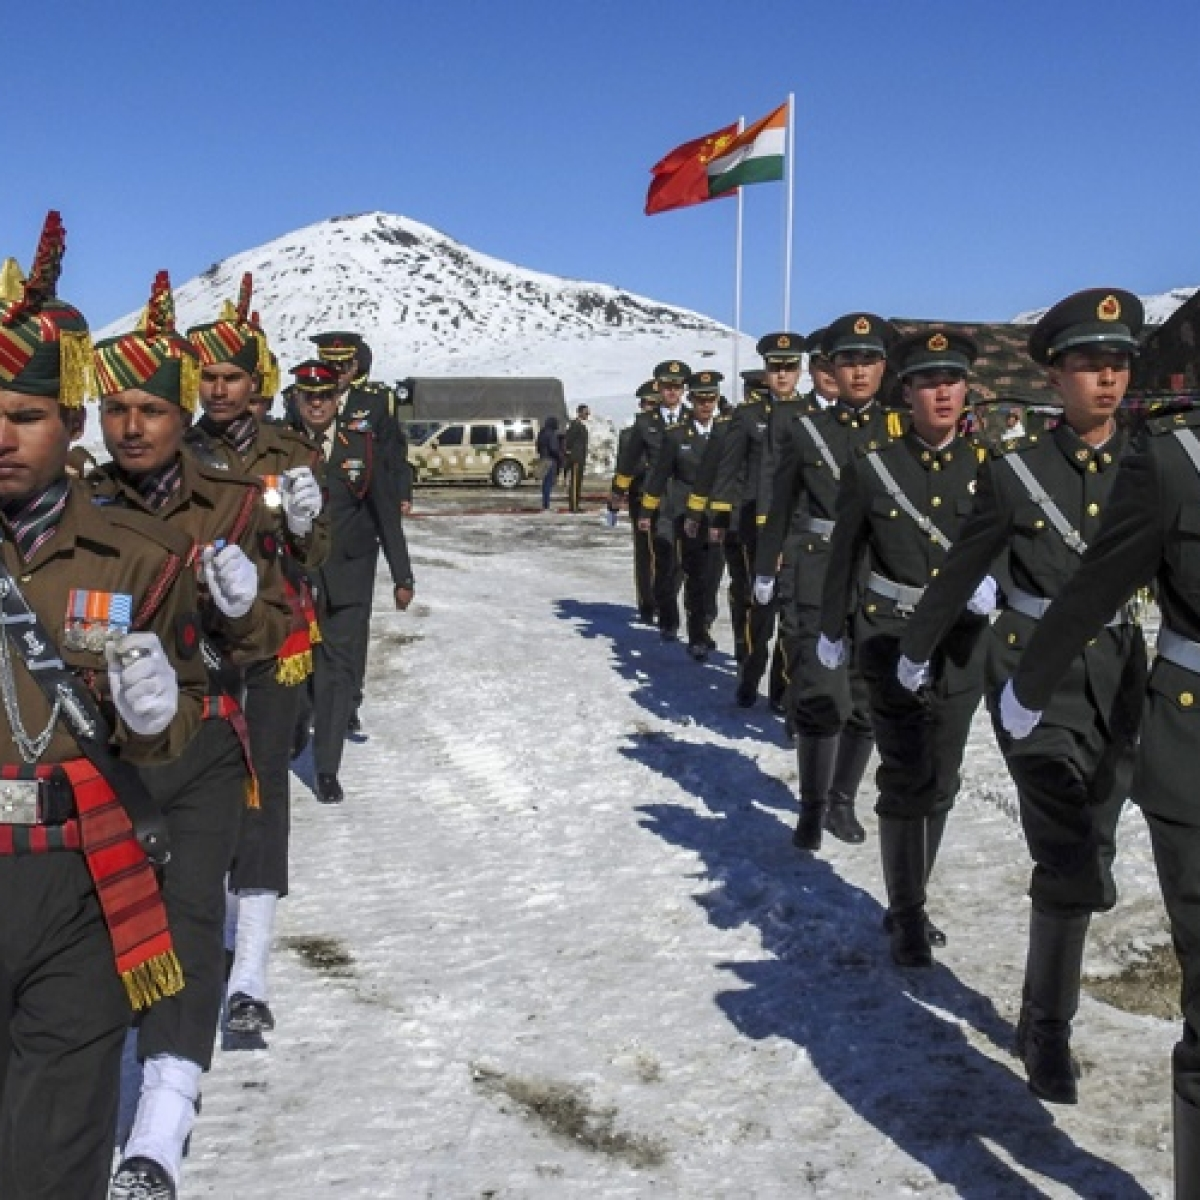 India-China face-off: The Asian cold war has been sparked off, writes Sanjay Jha